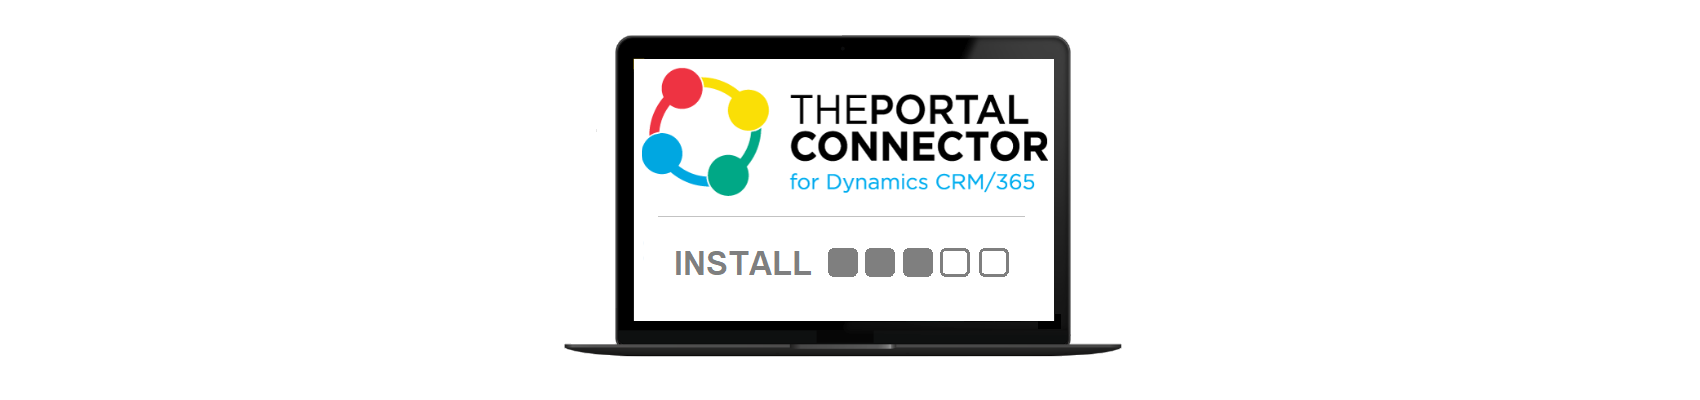 Common Installation Tips for The Portal Connector